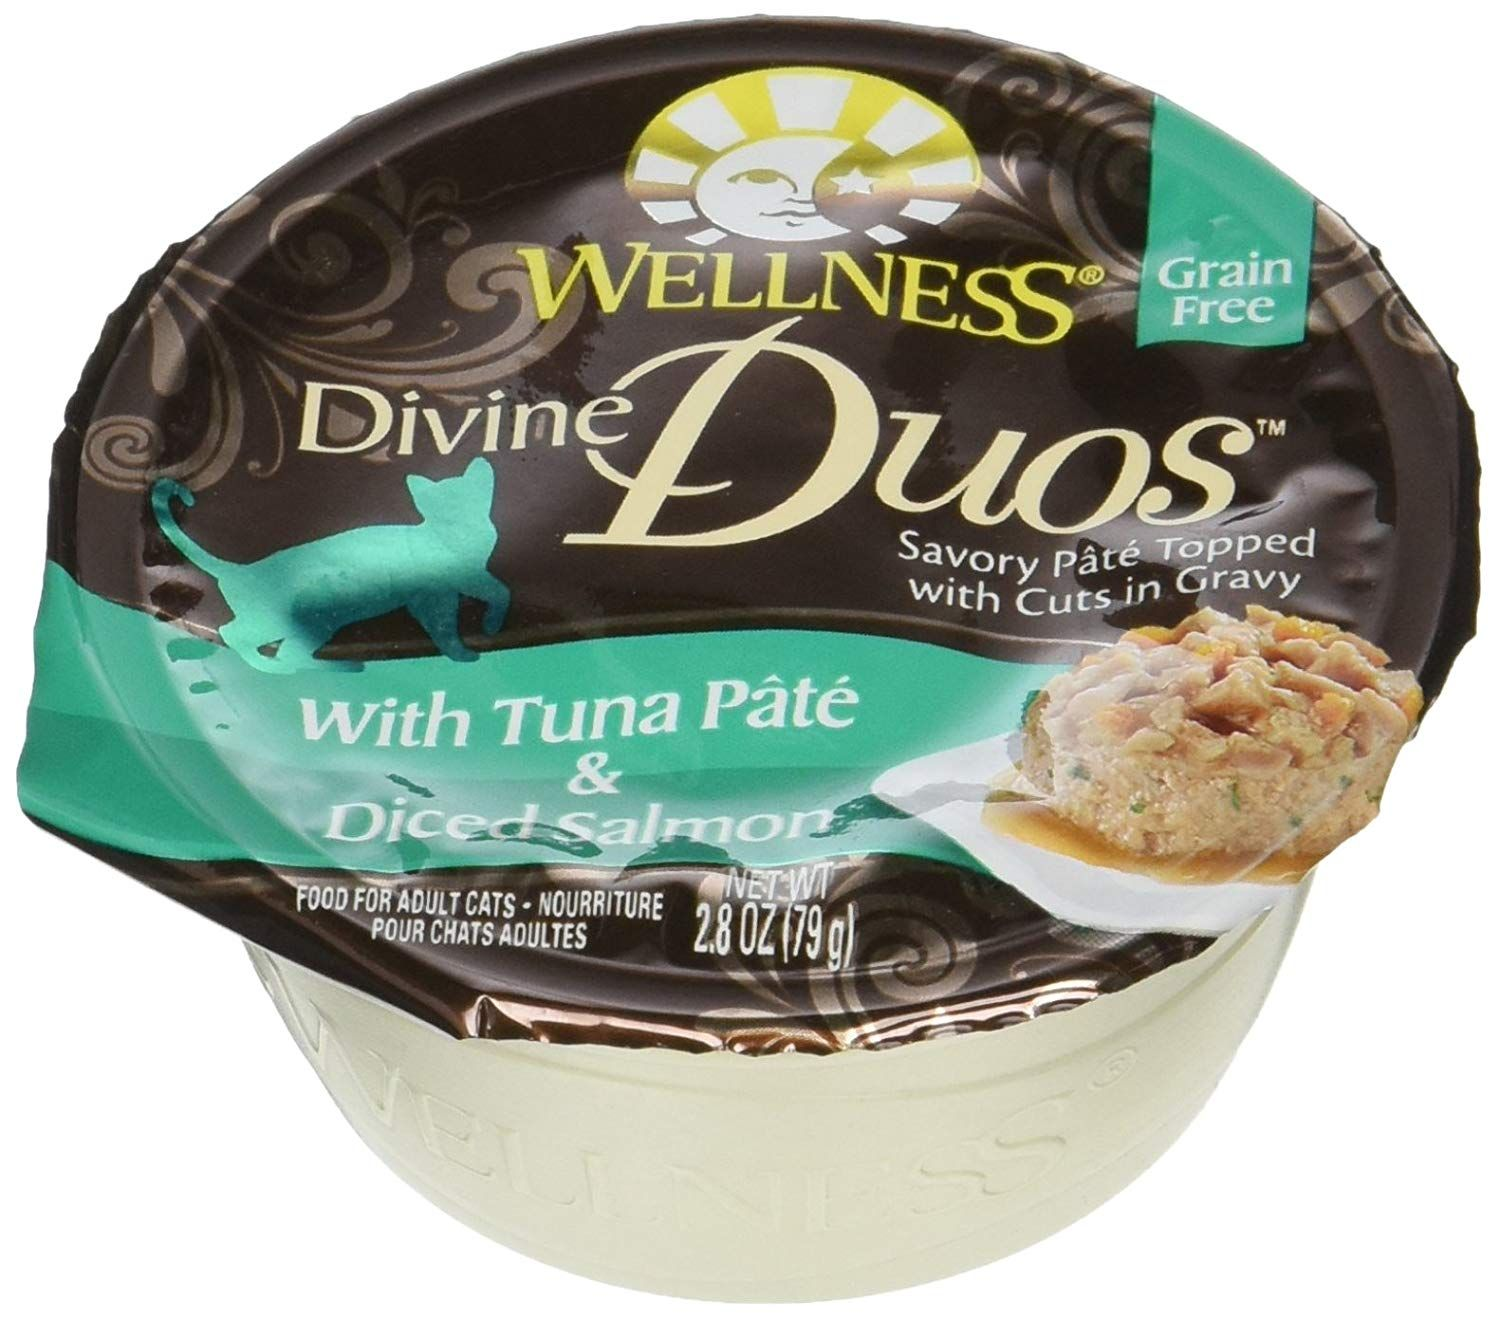 Wellness Divine Duos with Tuna Pate and Diced Salmon